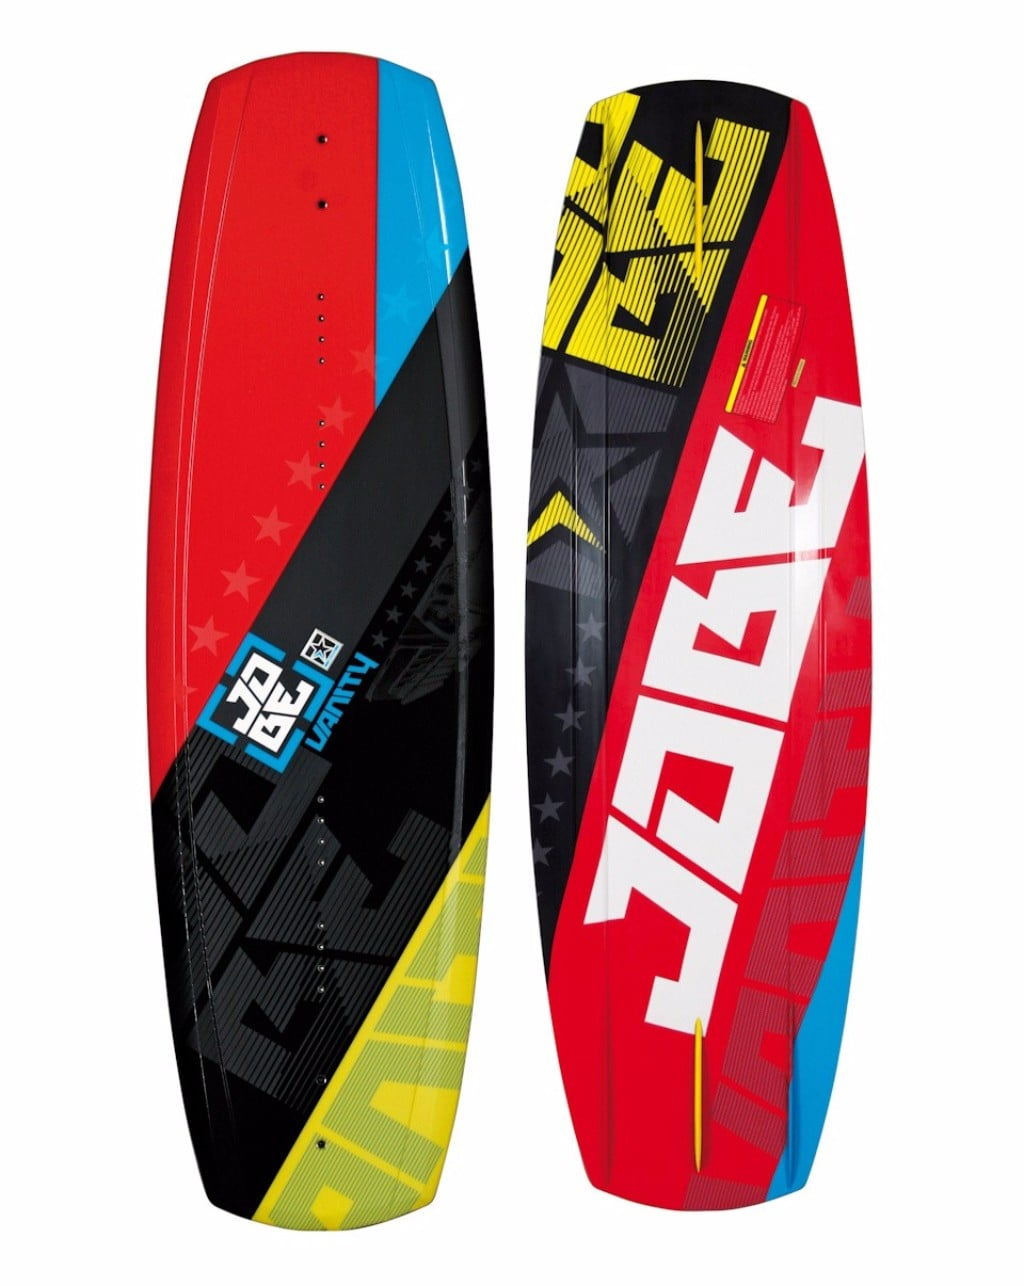 Jobe Vanity Series Wakeboard Review